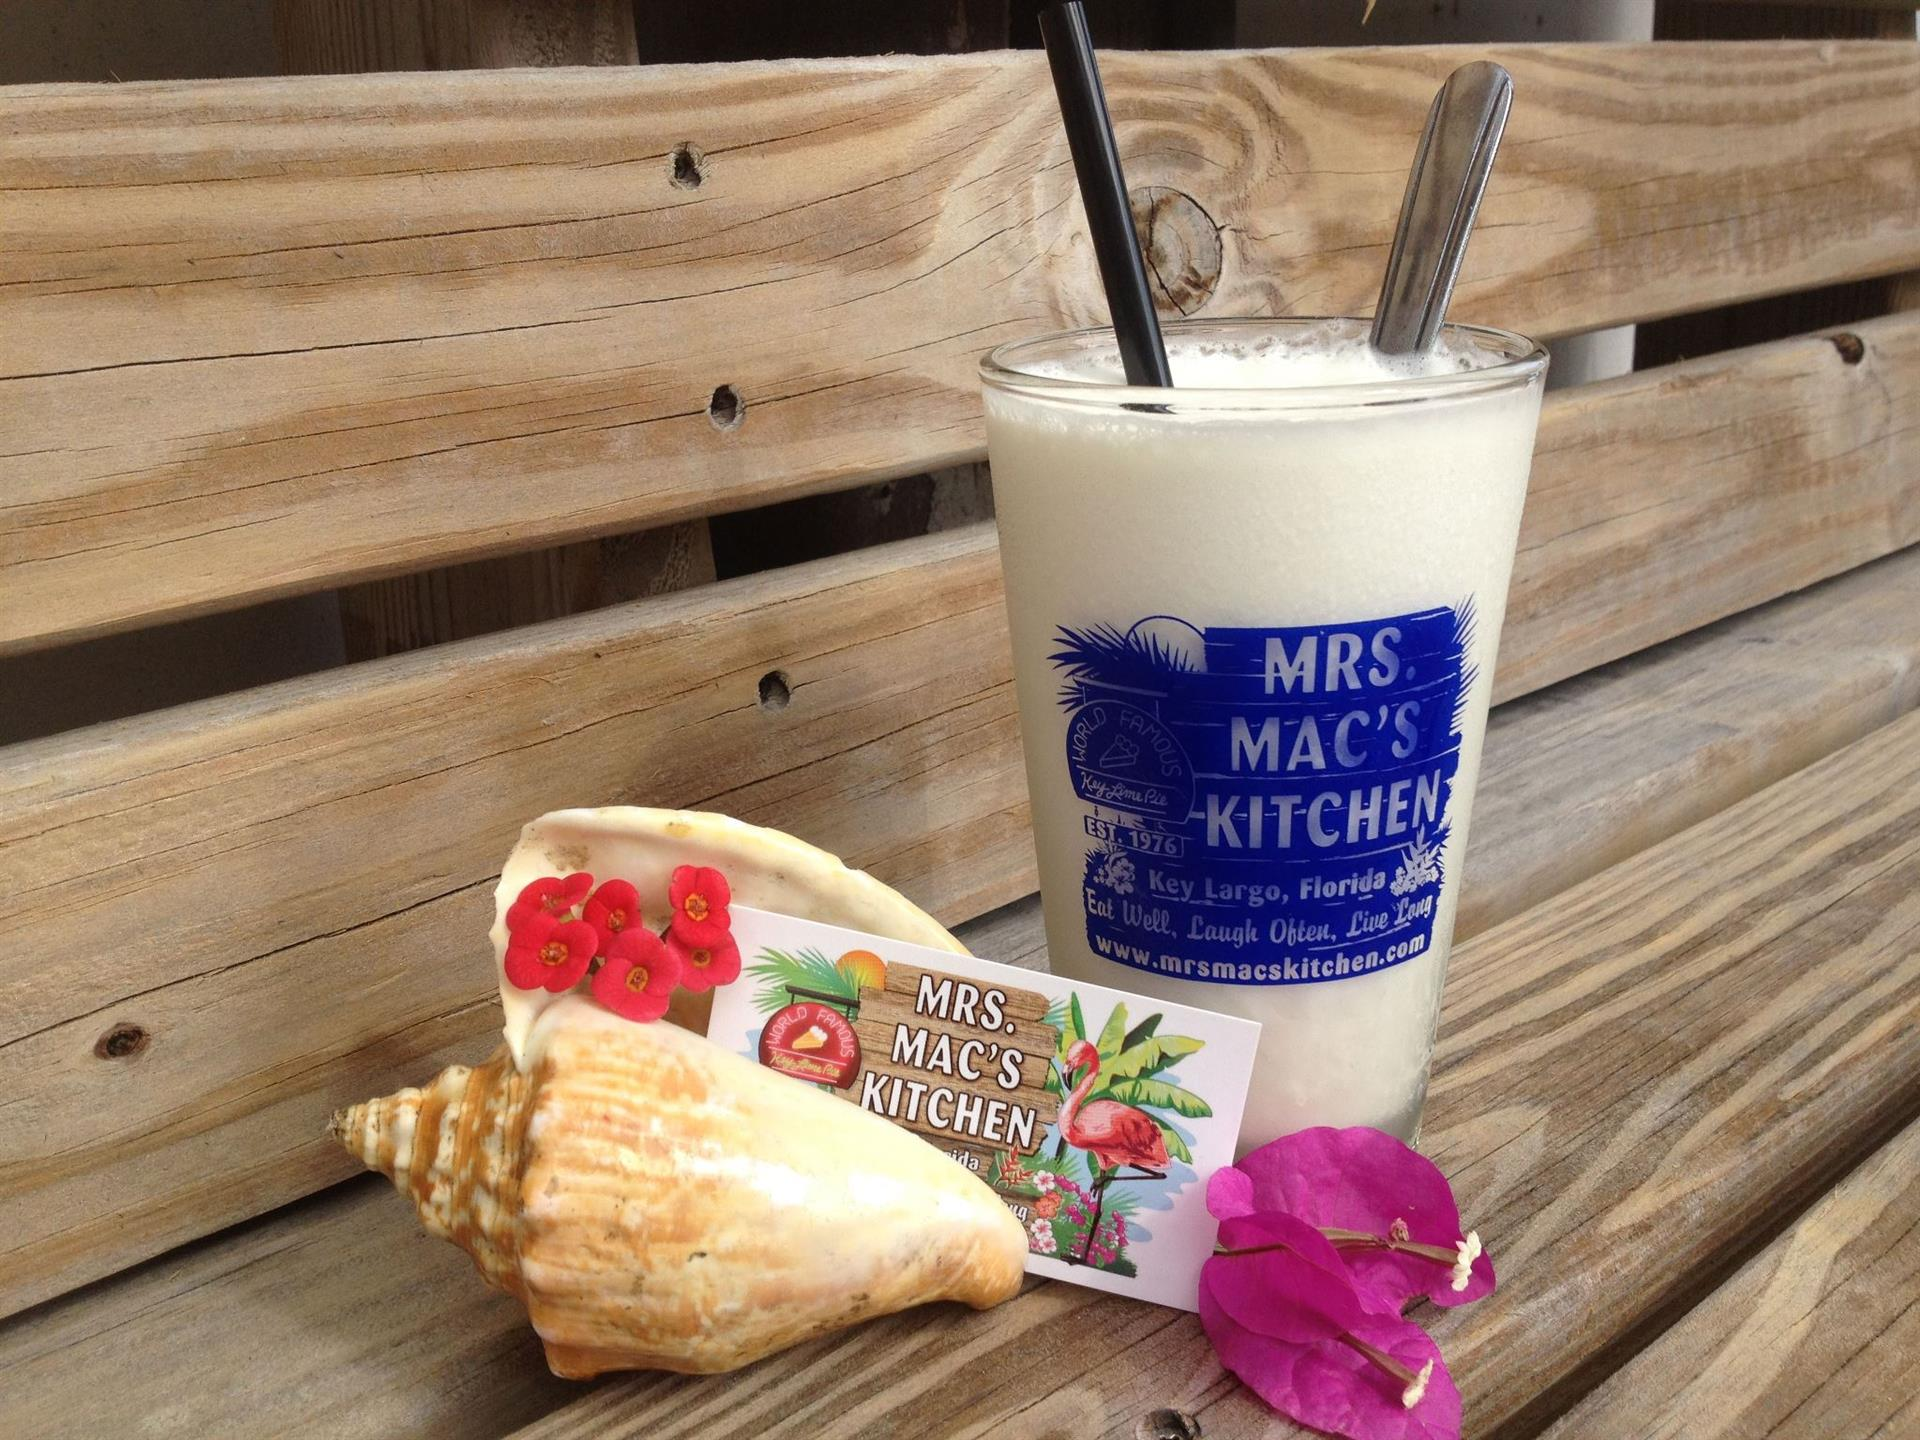 milkshake in a mrs. mac's kitchen, shells, and a mrs. mac;s kitchen gift card